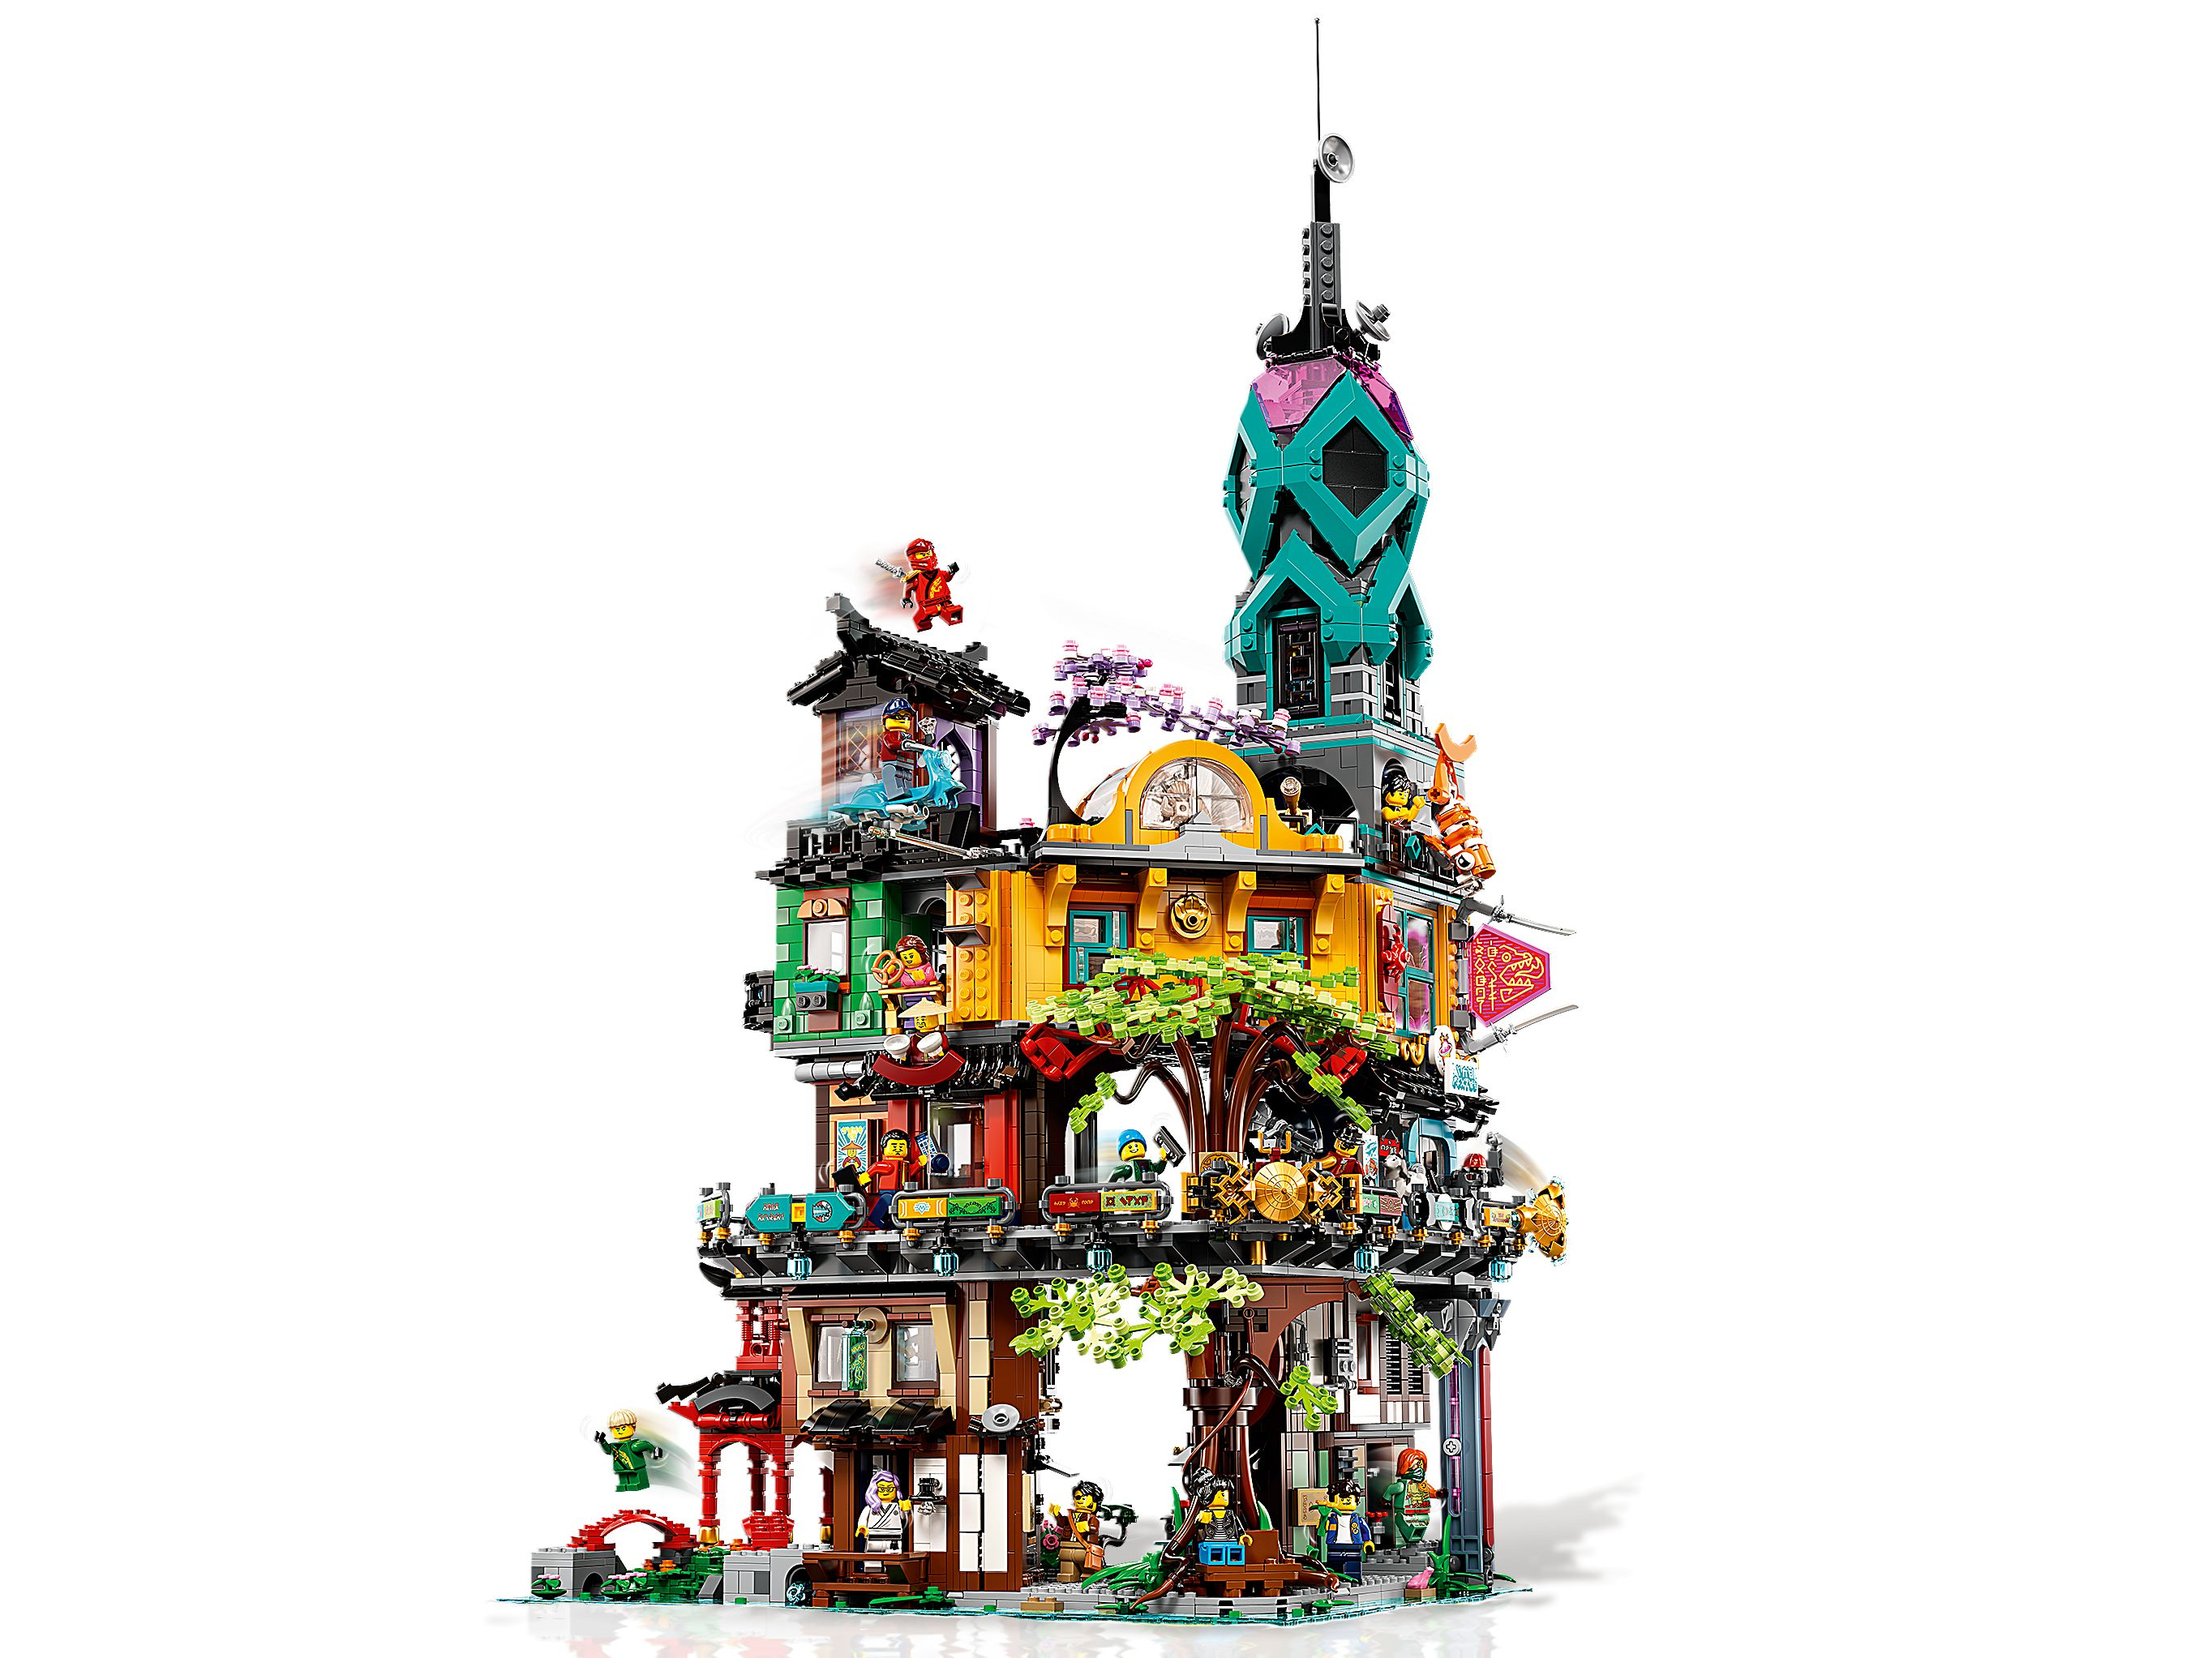 LEGO The LEGO Ninjago Movie 71741 Die Gärten von Ninjago City LEGO_71741_alt3.jpg